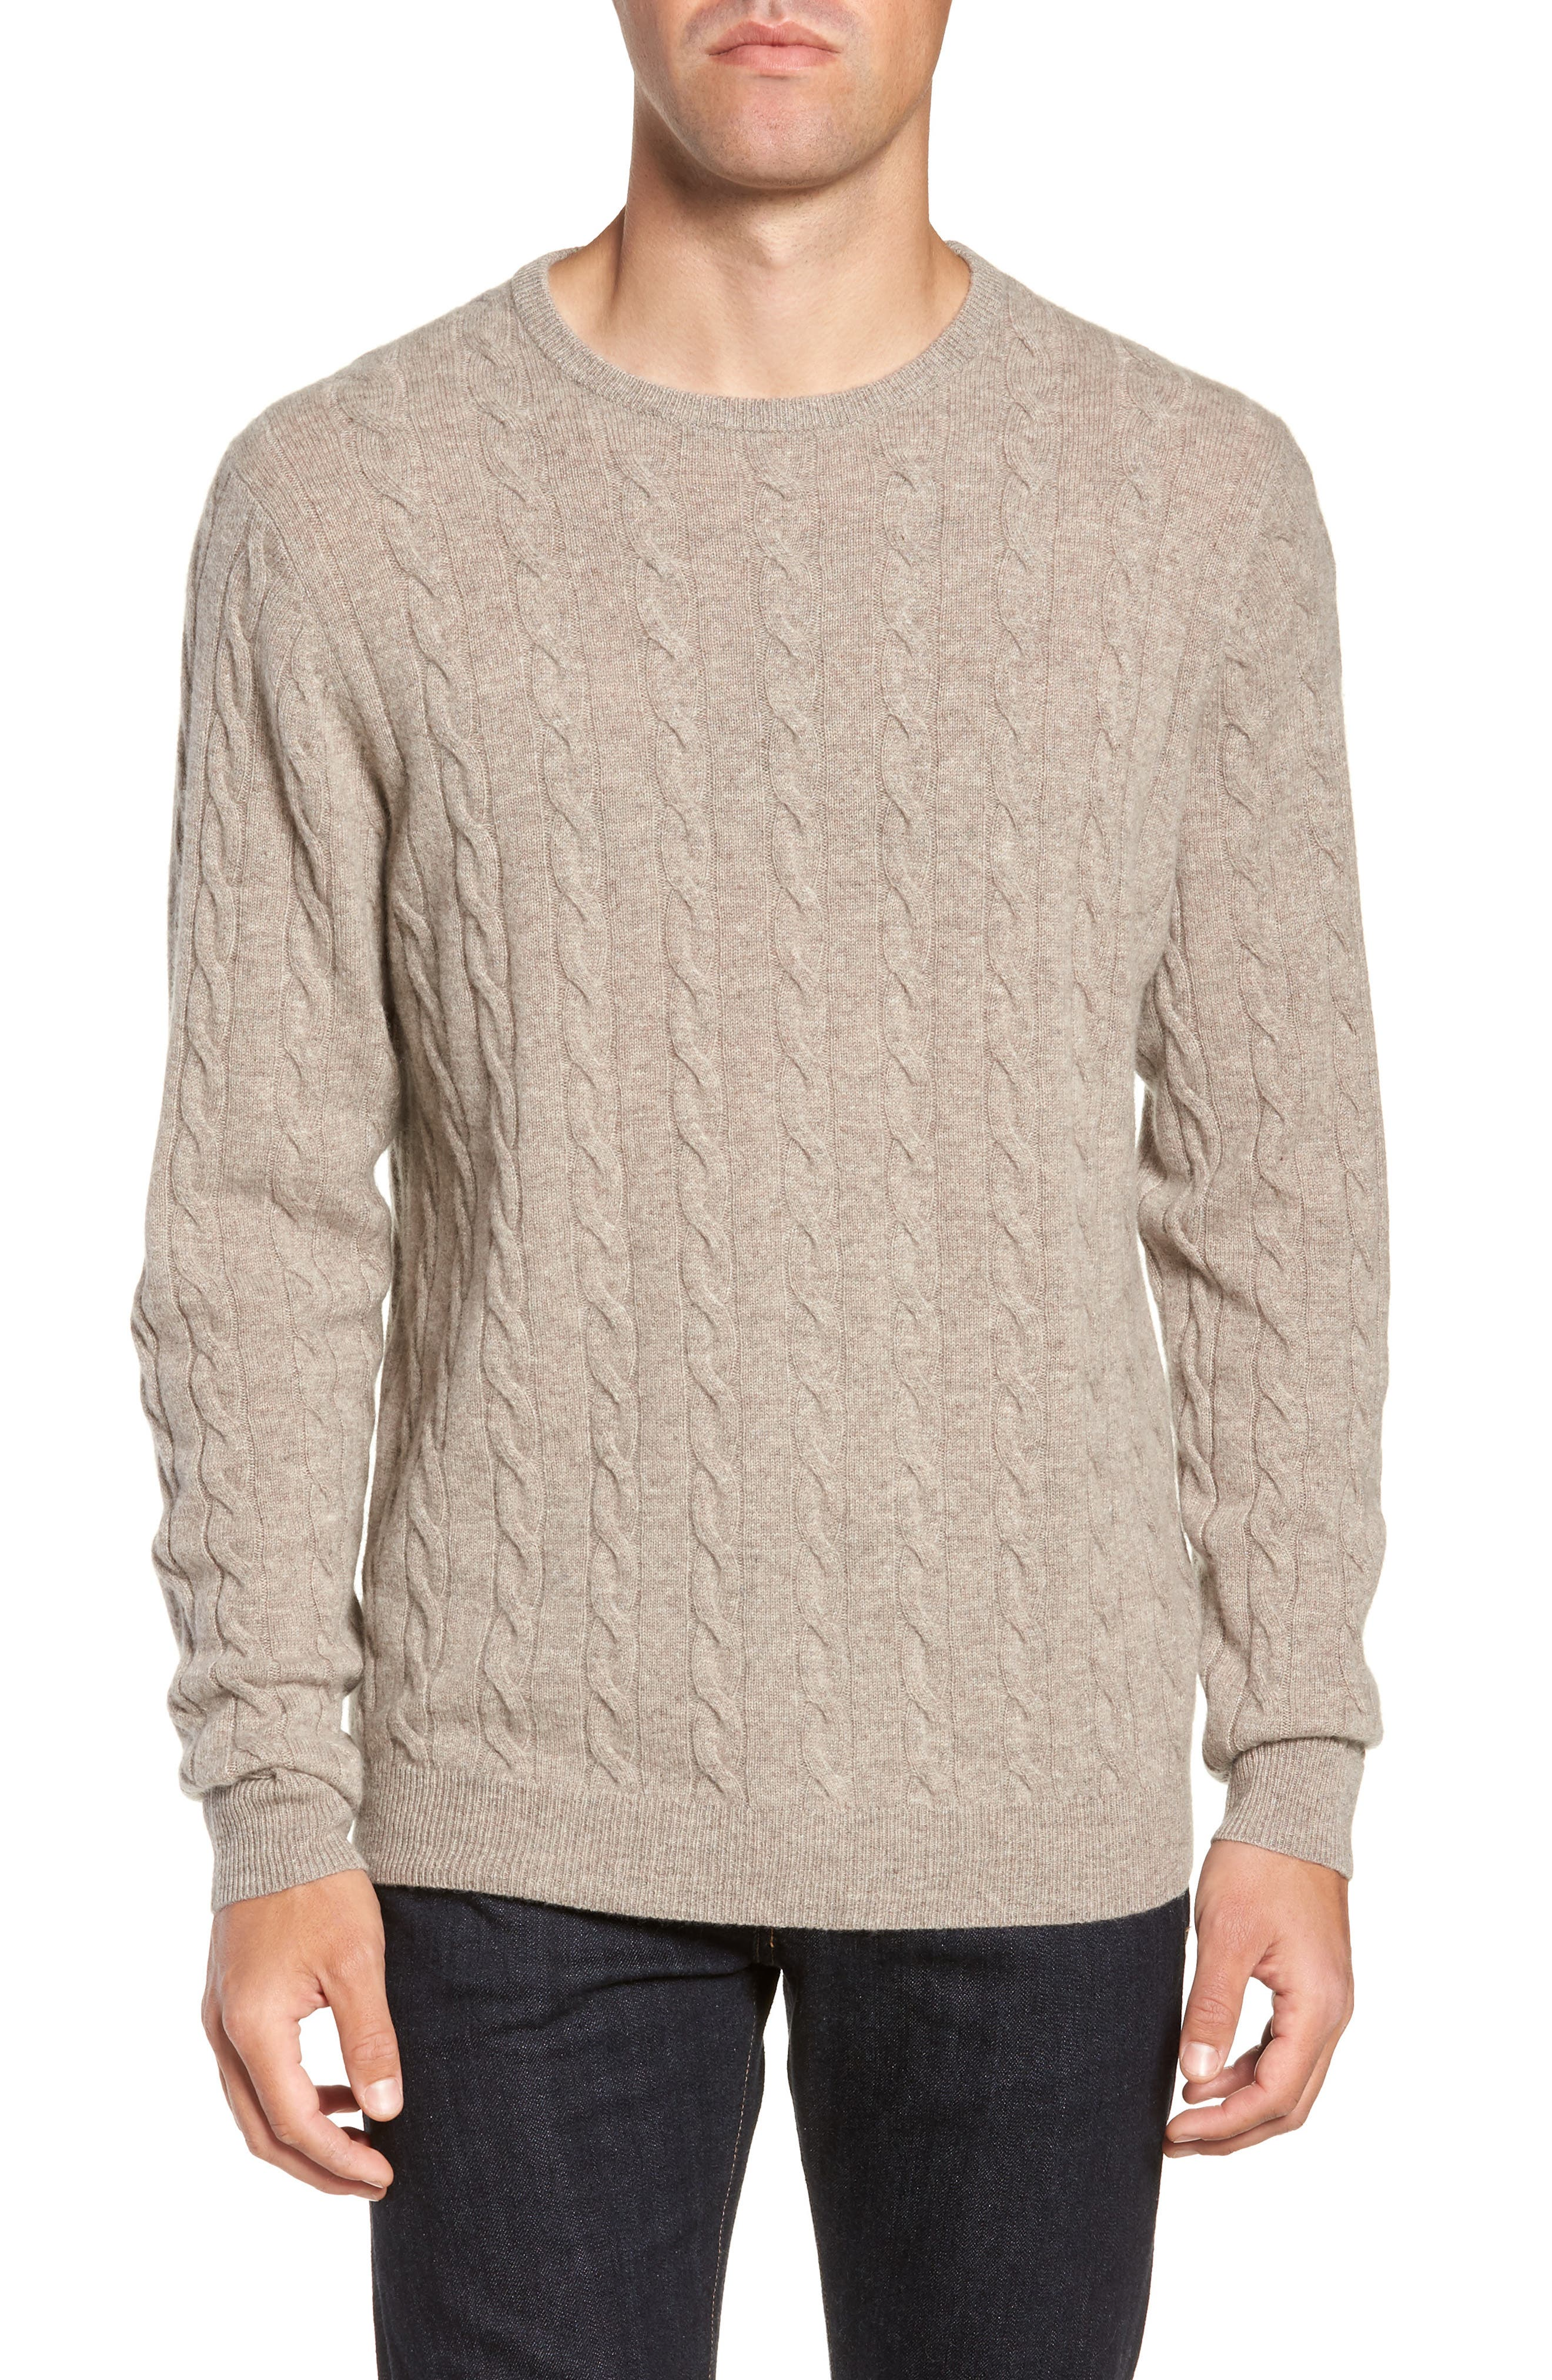 Cashmere Cable Knit Sweater,                             Main thumbnail 1, color,                             270